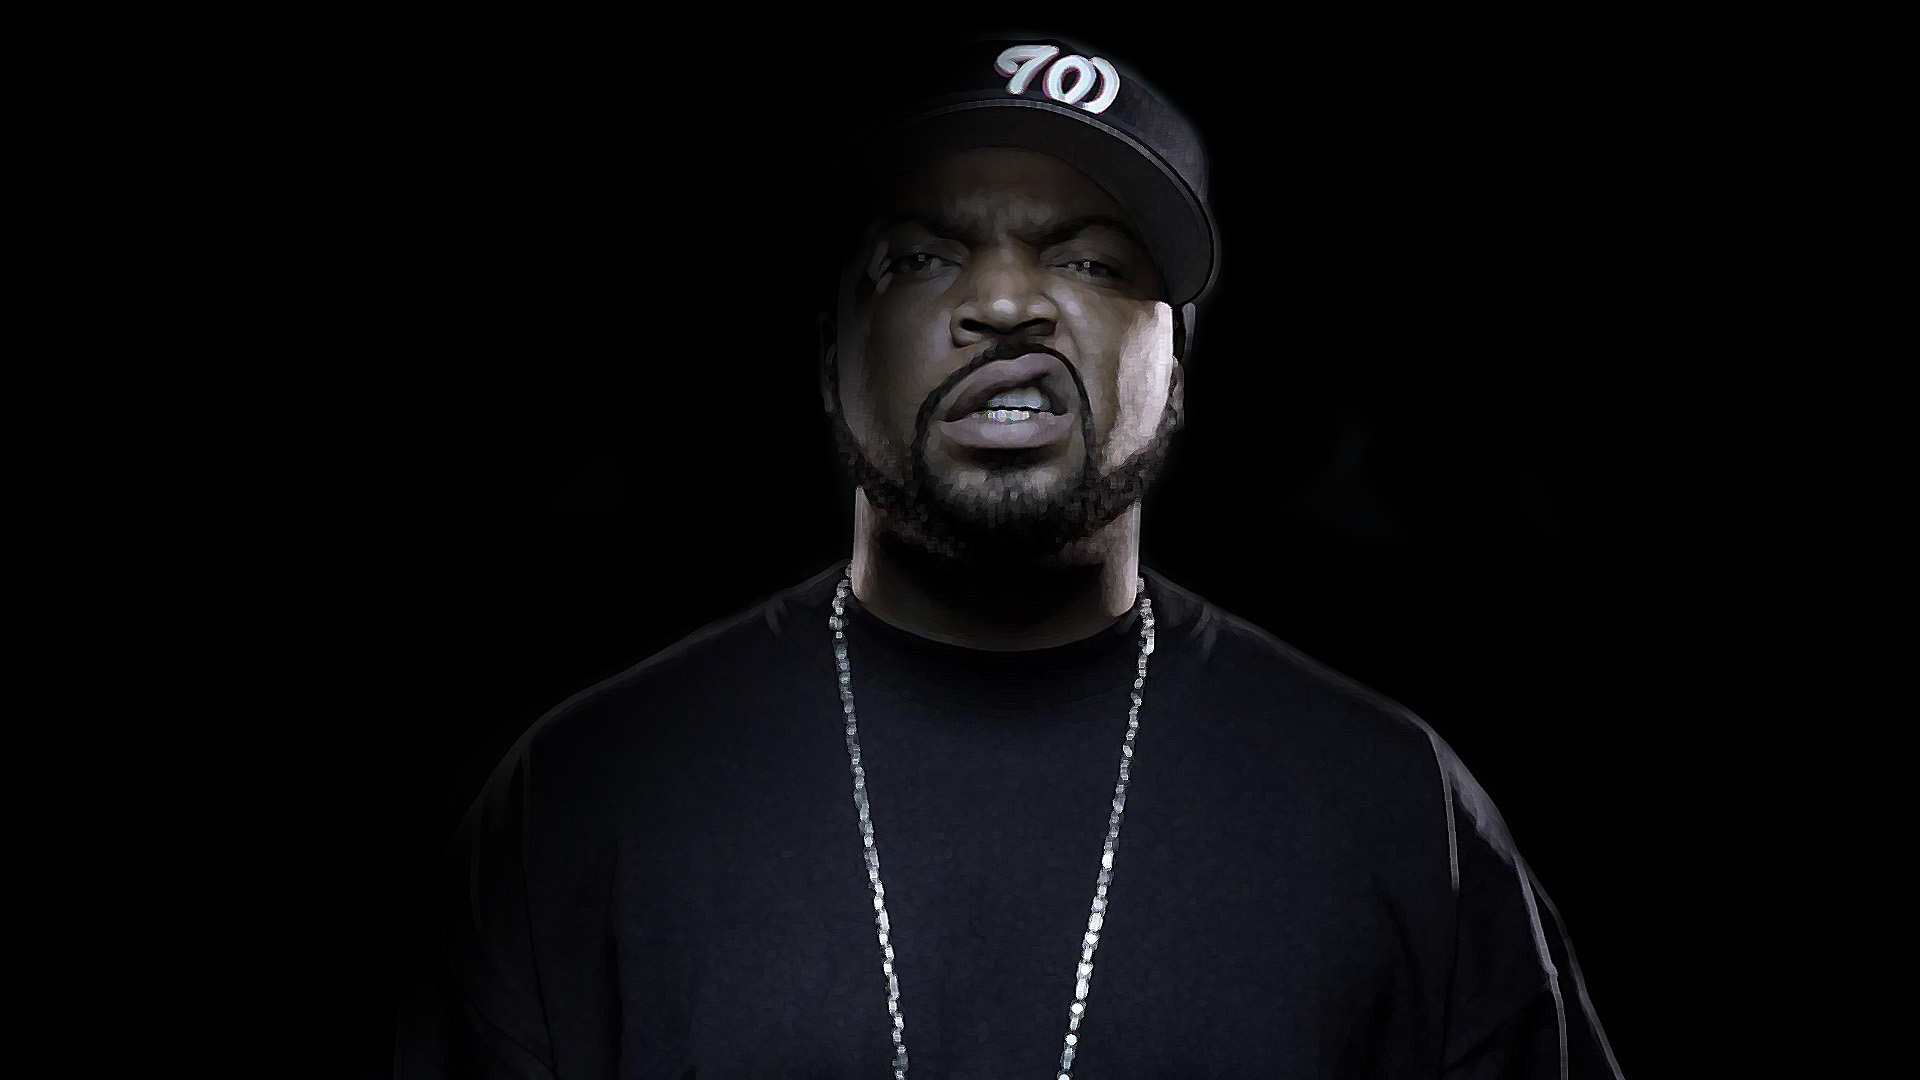 Ice Cube wallpapers Ice Cube background 1920x1080